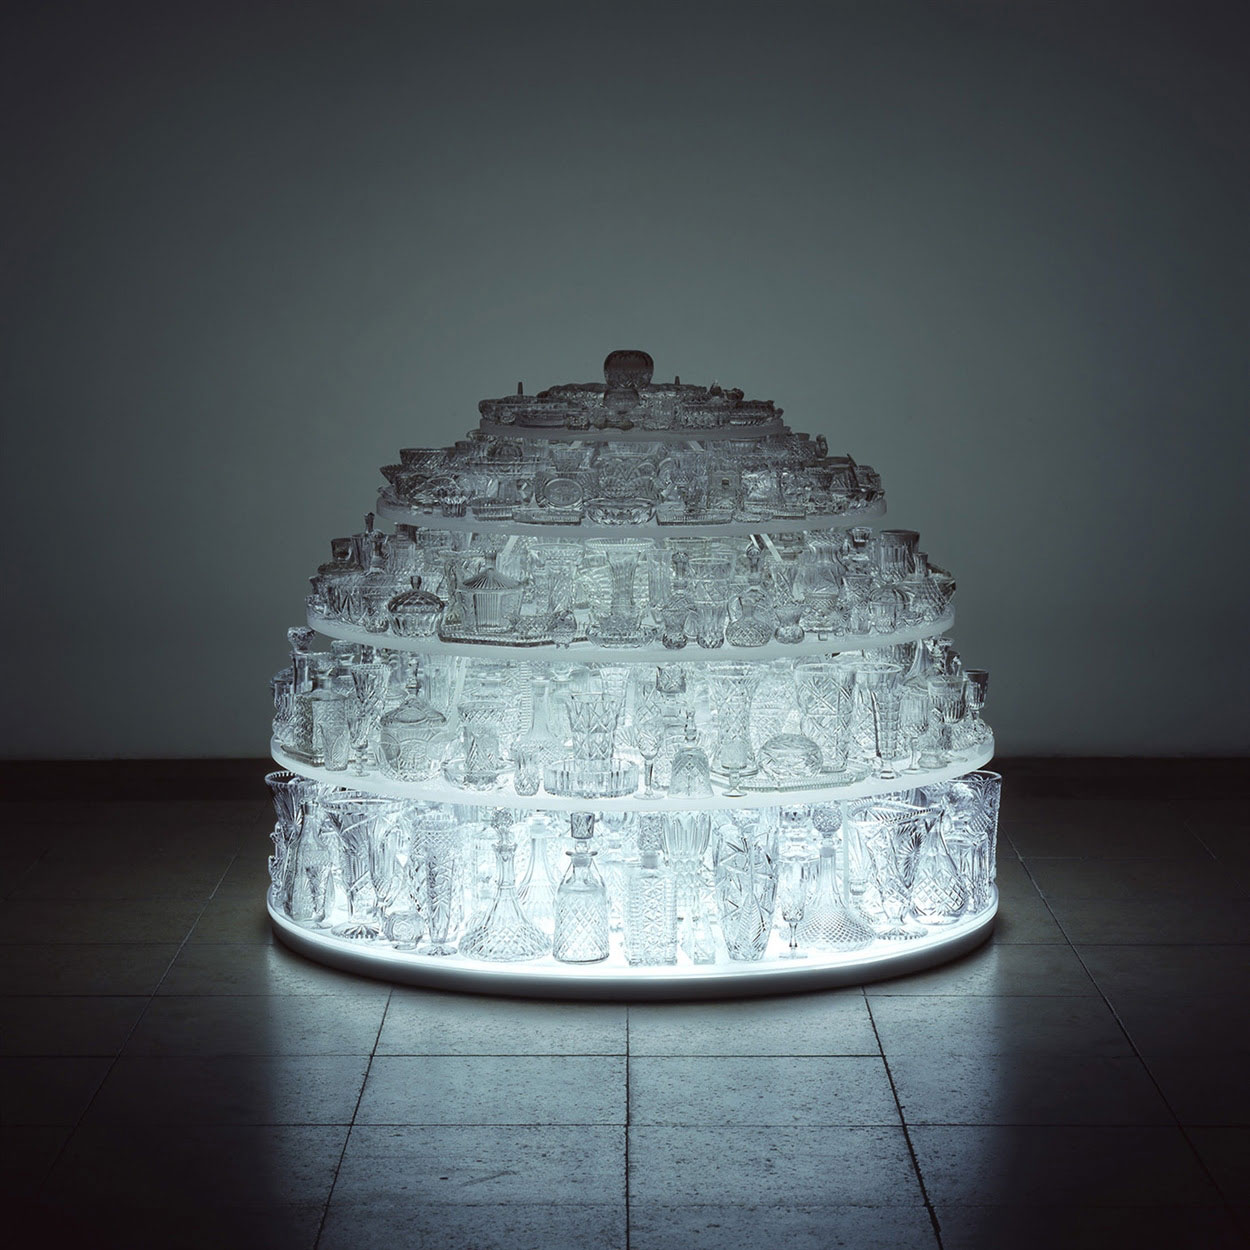 Stuart Haygarth, Igloo, 2011. LED lighting, clear crystal glassware, Perspex. Photo courtesy Carpenters Workshop Gallery.